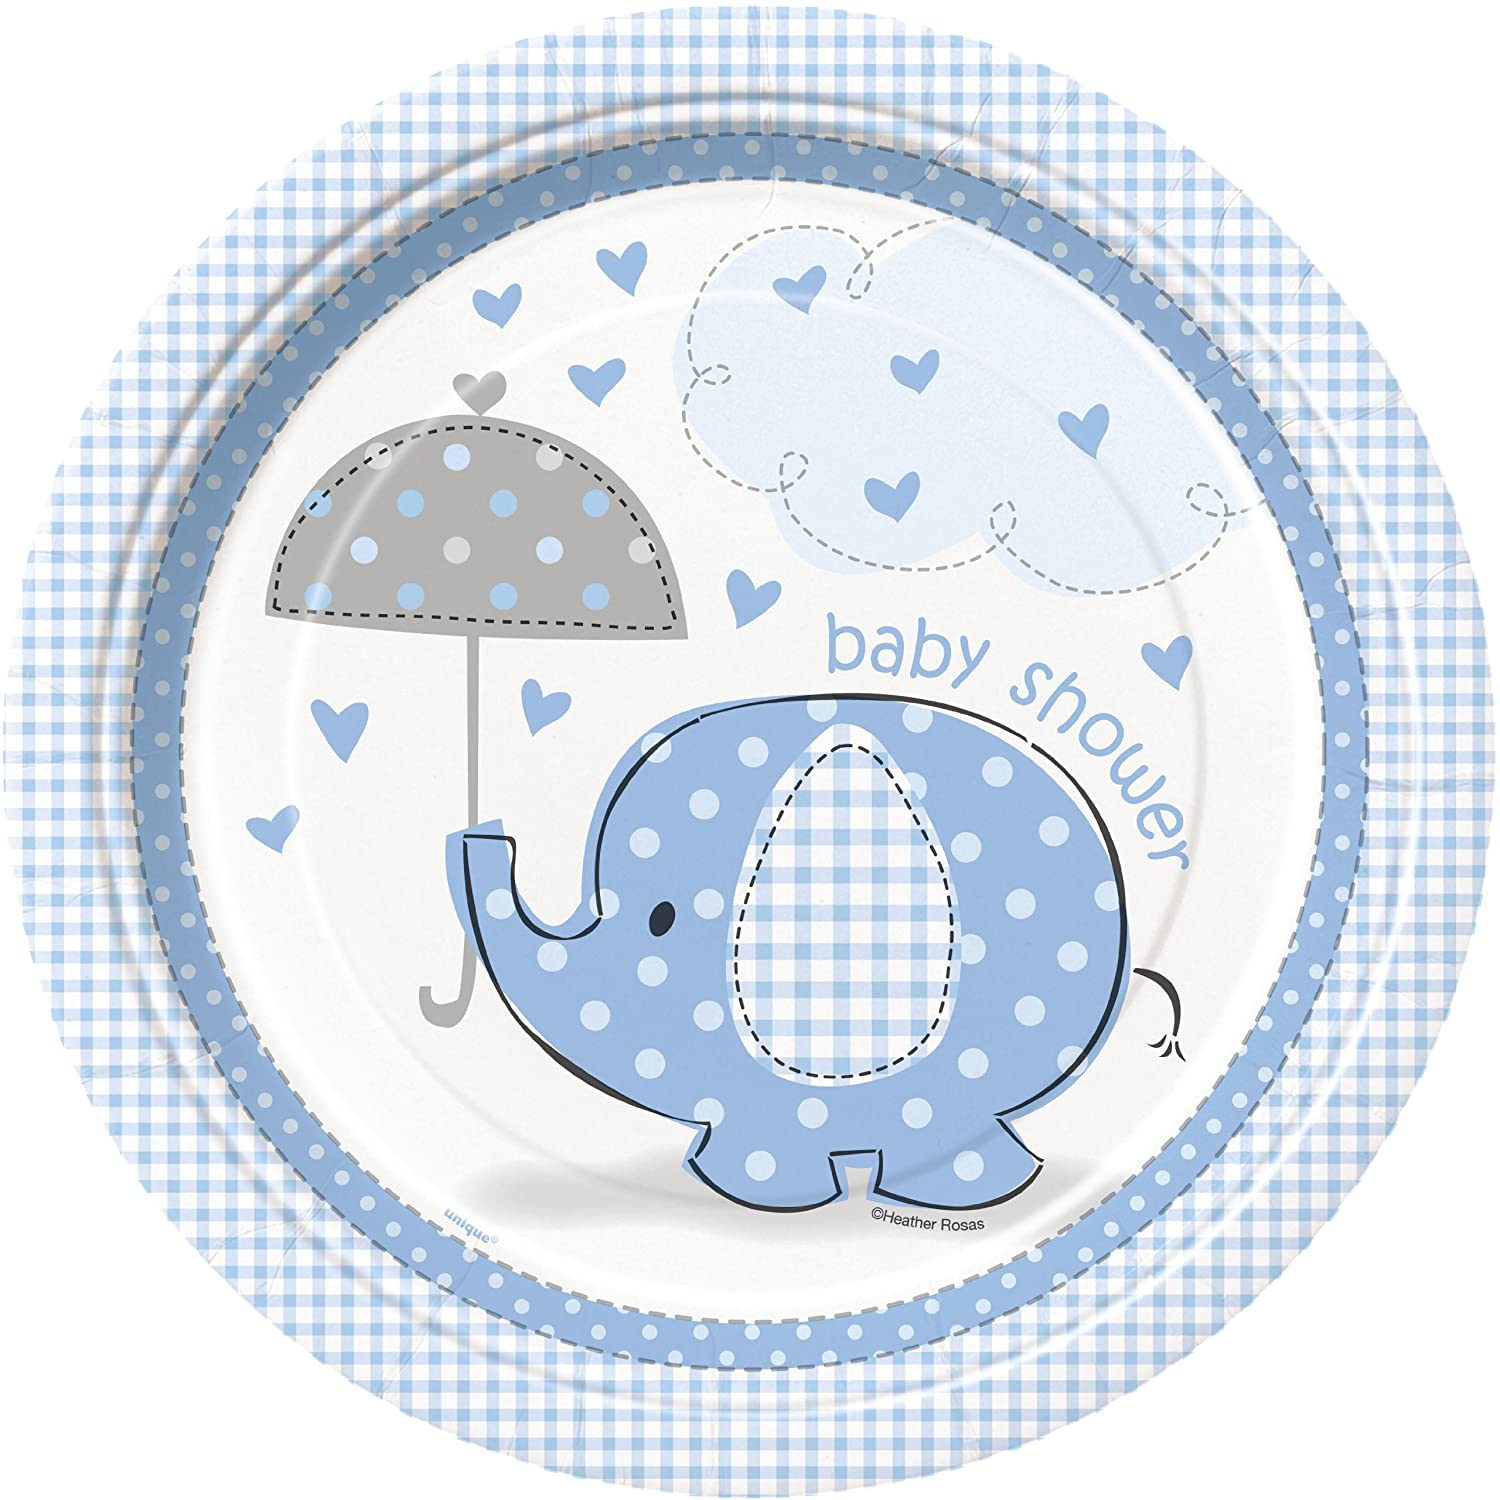 Amazon.com: Blue Elephant Boy Baby Shower Dinner Plates, 8ct: Kitchen U0026  Dining